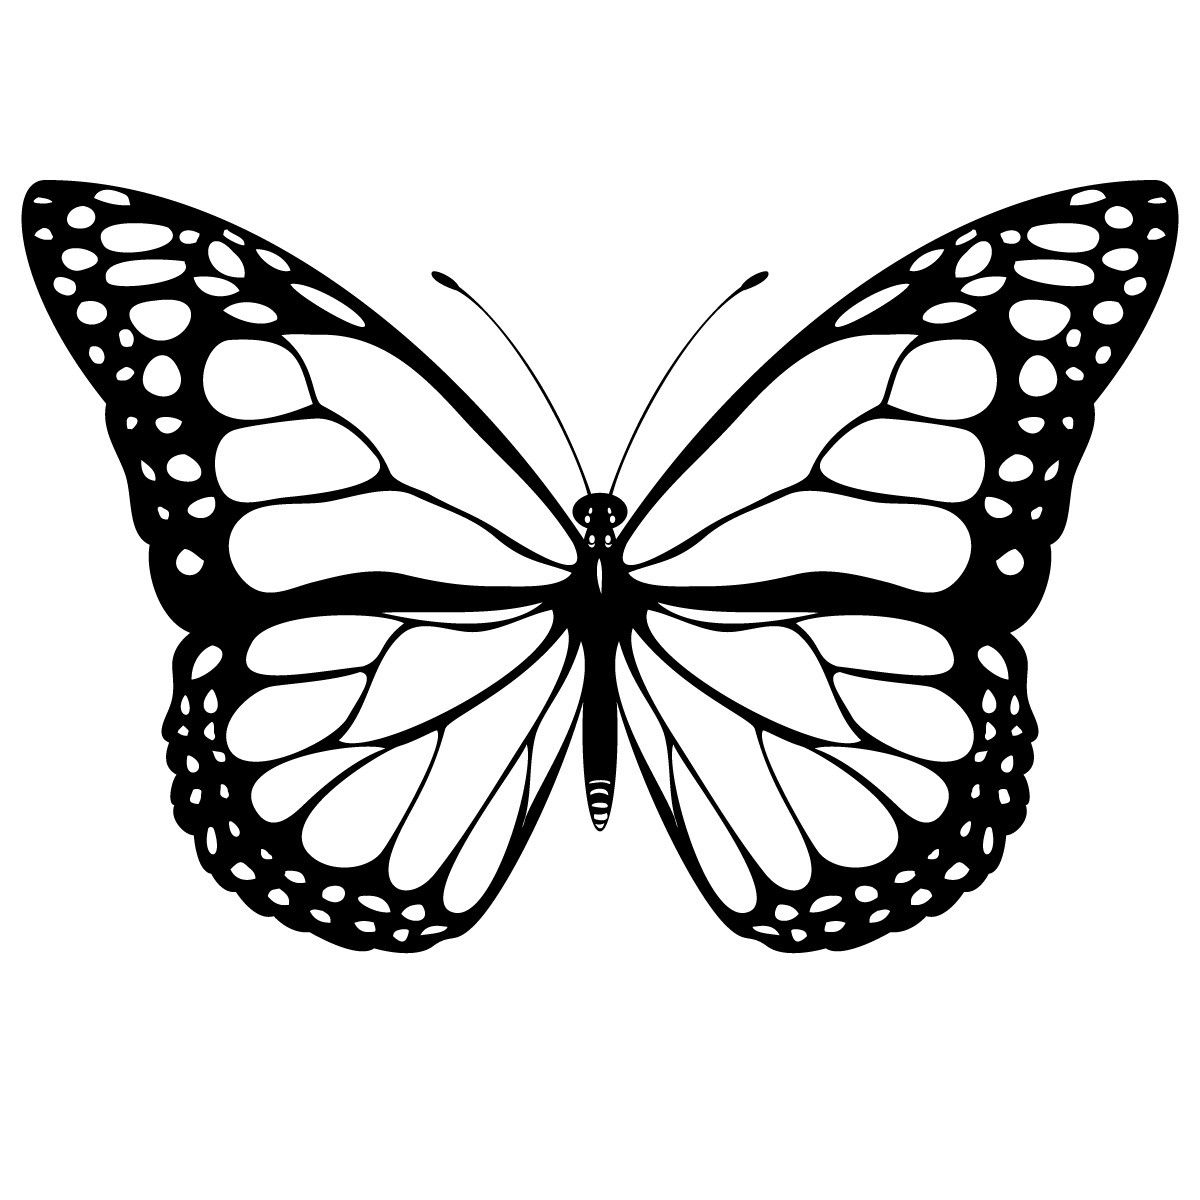 Monarch butterfly Coloring Pages to Print 3r - Free For kids